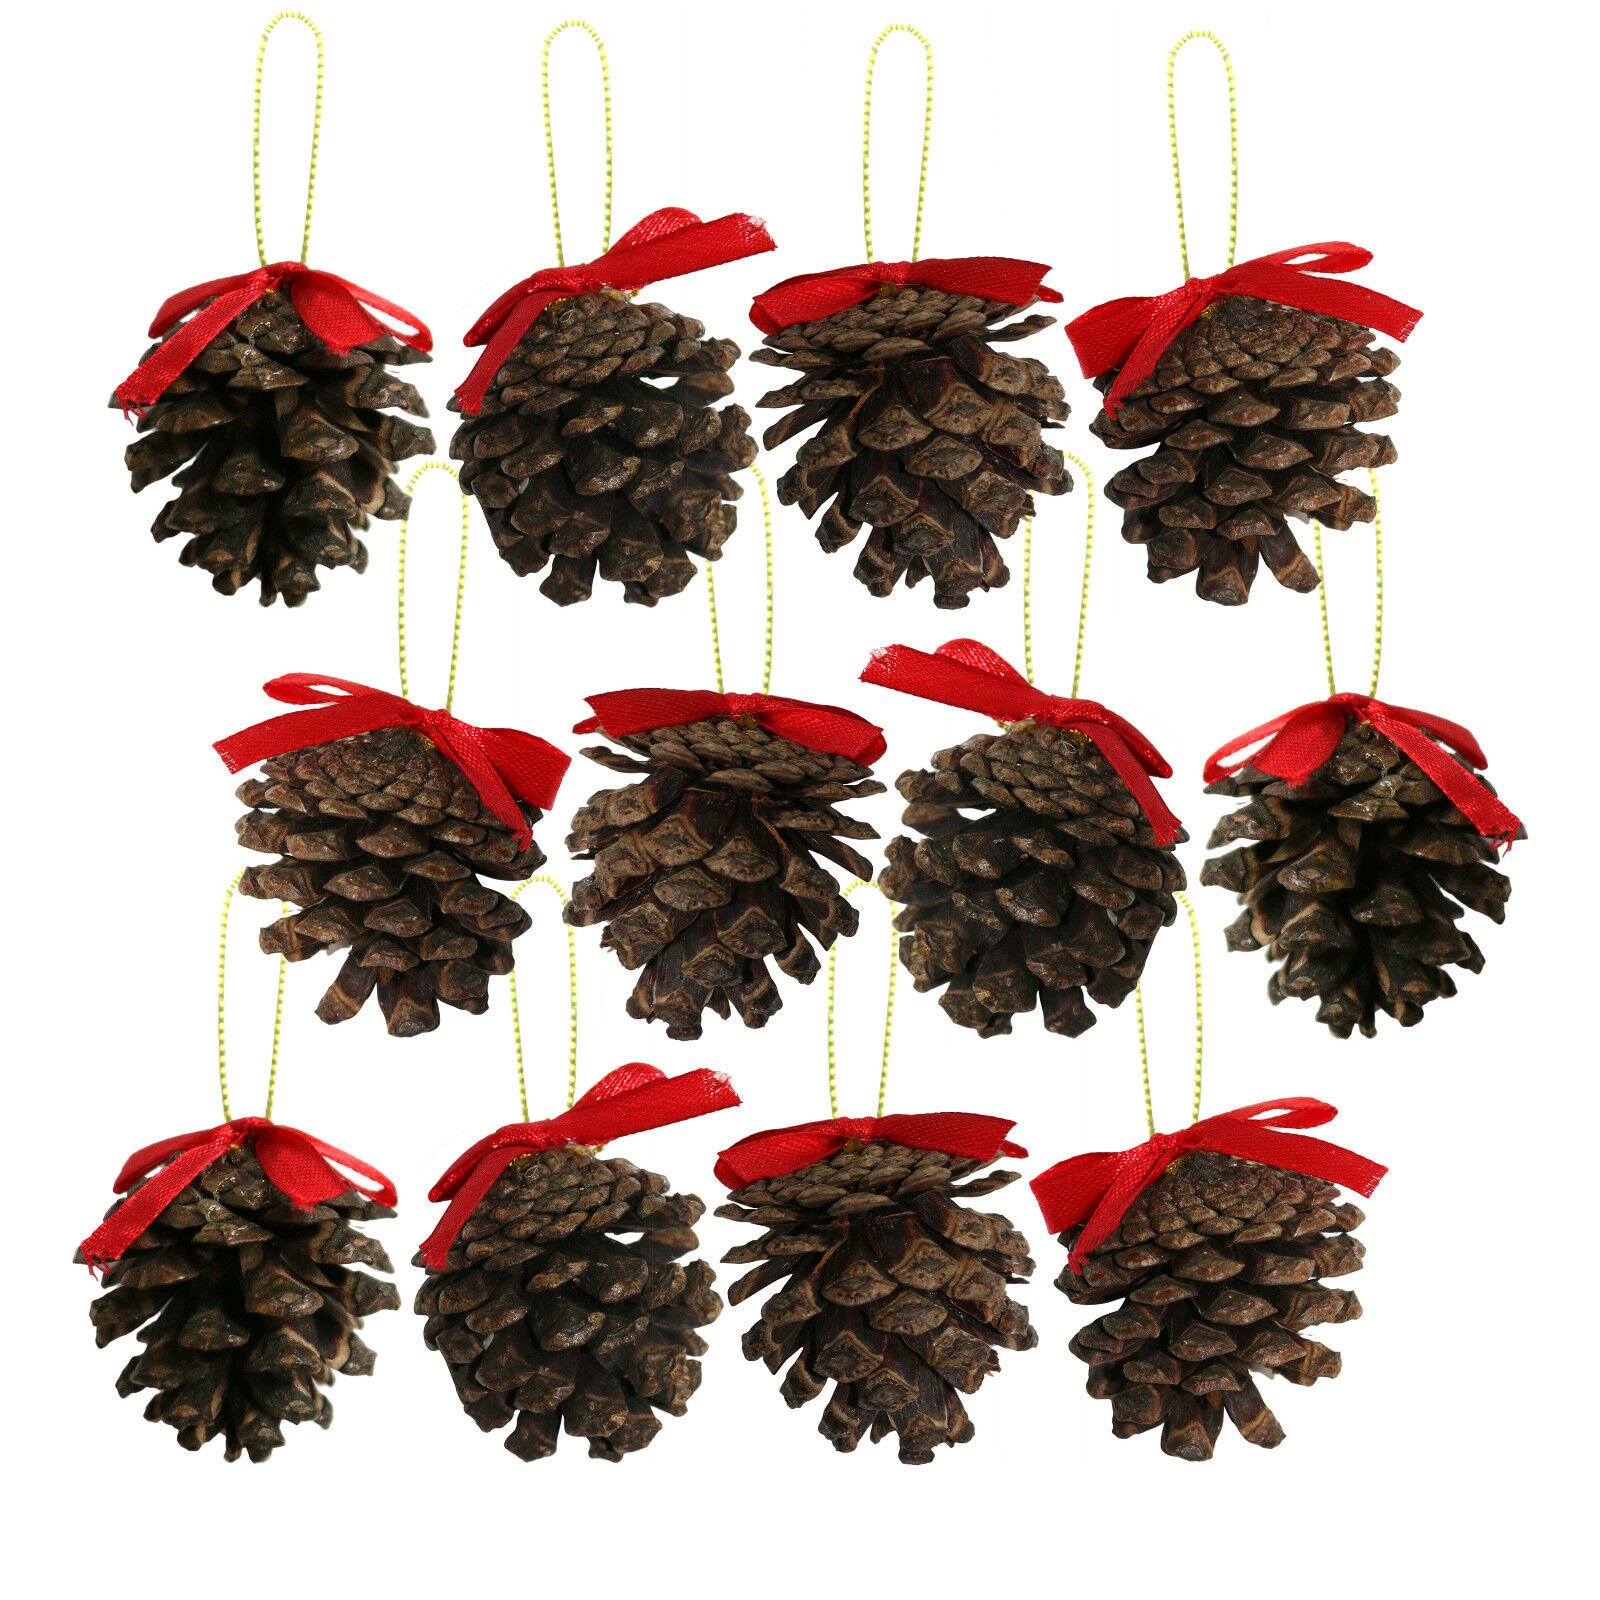 Pine Cones Natural Fir Christmas Hanging Tree Decoration Craft Ornaments Pendant